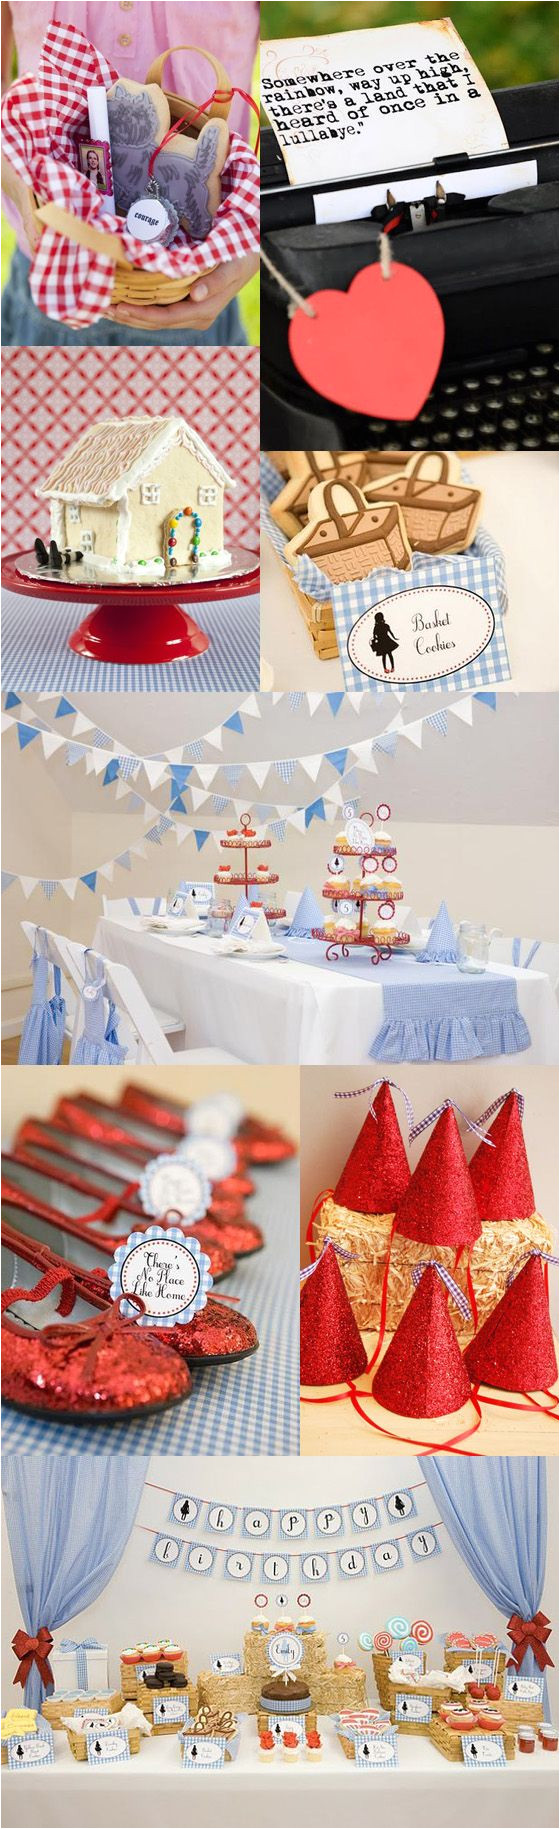 fun wizard of oz birthday party decoration ideas oh dear lord melissa wilson this is